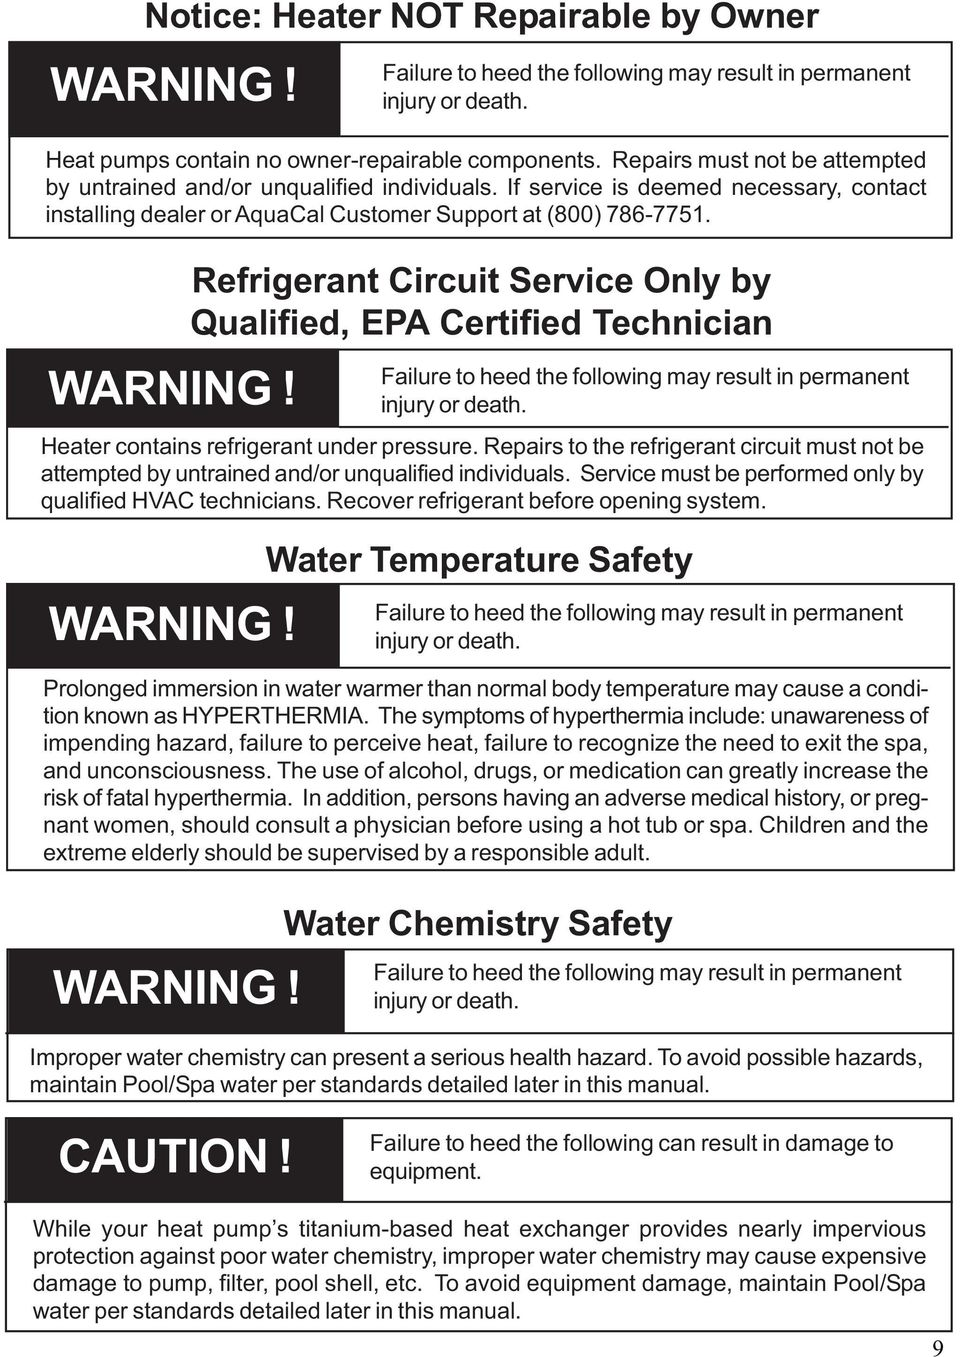 WARNING! Refrigerant Circuit Service Only by Qualified, EPA Certified Technician Water Temperature Safety Failure to heed the following may result in permanent injury or death.